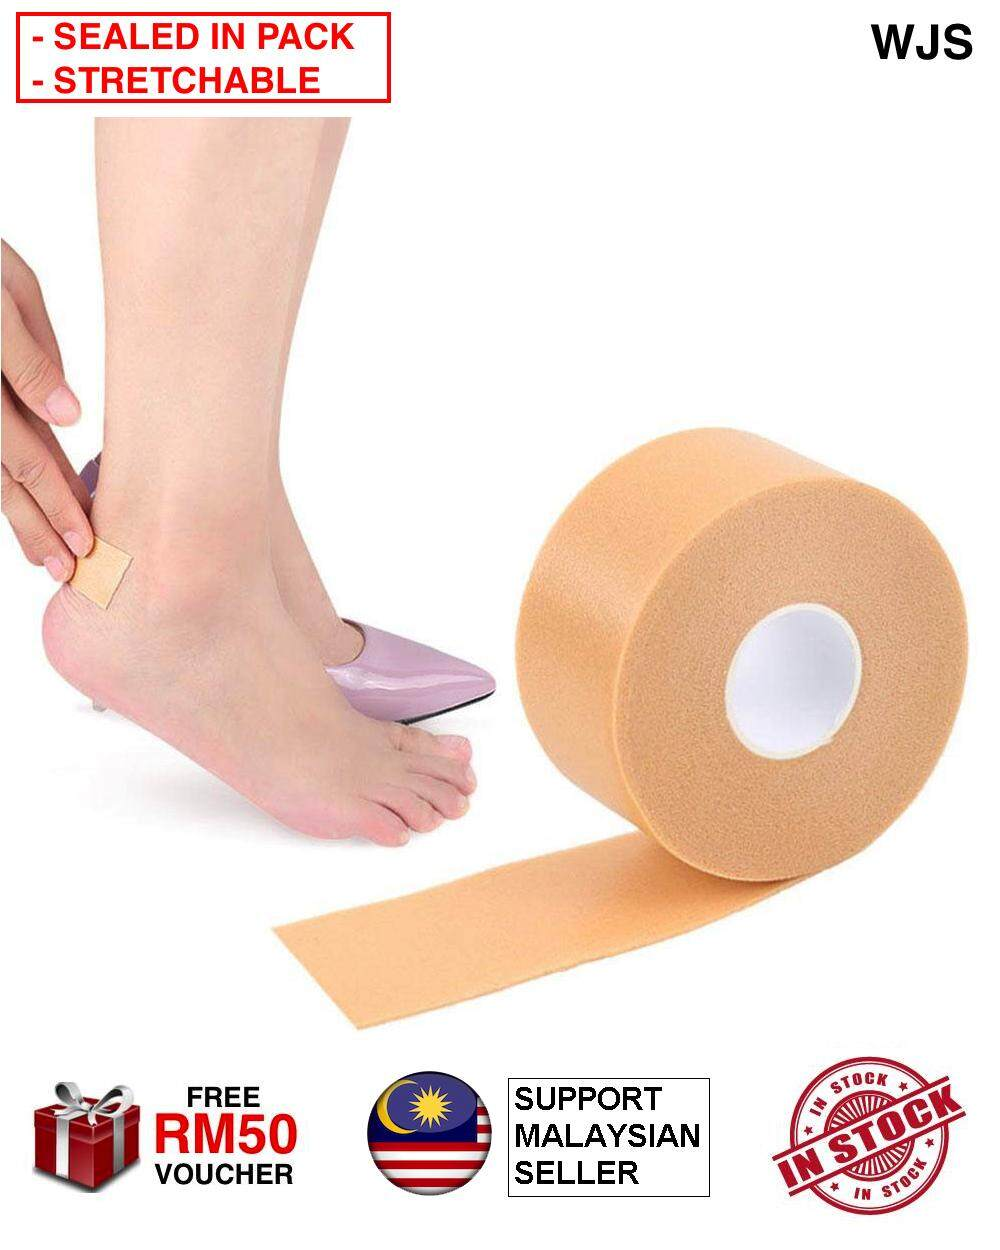 (SEALED IN PACK) WJS High Heel Sticker Multipurpose Foot Care Sticker Anti-slip High Heeled Heel Stickers Feet Pad Tape Cushions Shoes Insoles Insert Stick For Pain Relief 450CM SKIN COLOR [FREE RM 50 VOUCHER]